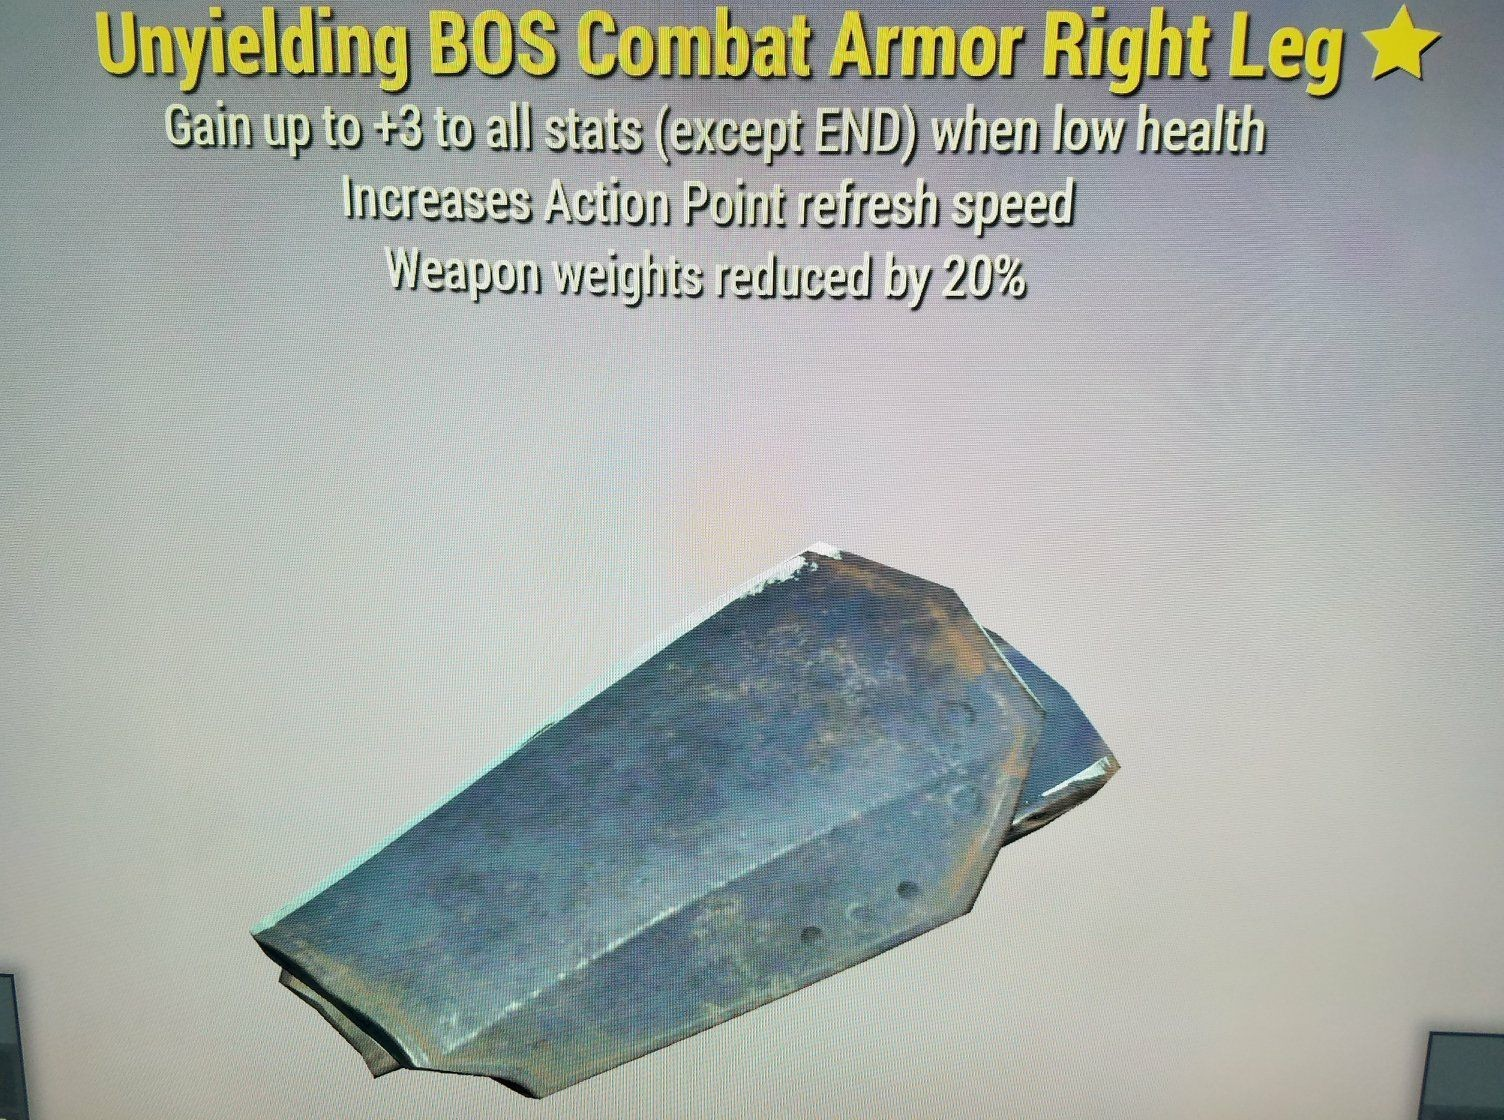 WW Reduction Unyielding BOS Combat Armor Right Leg